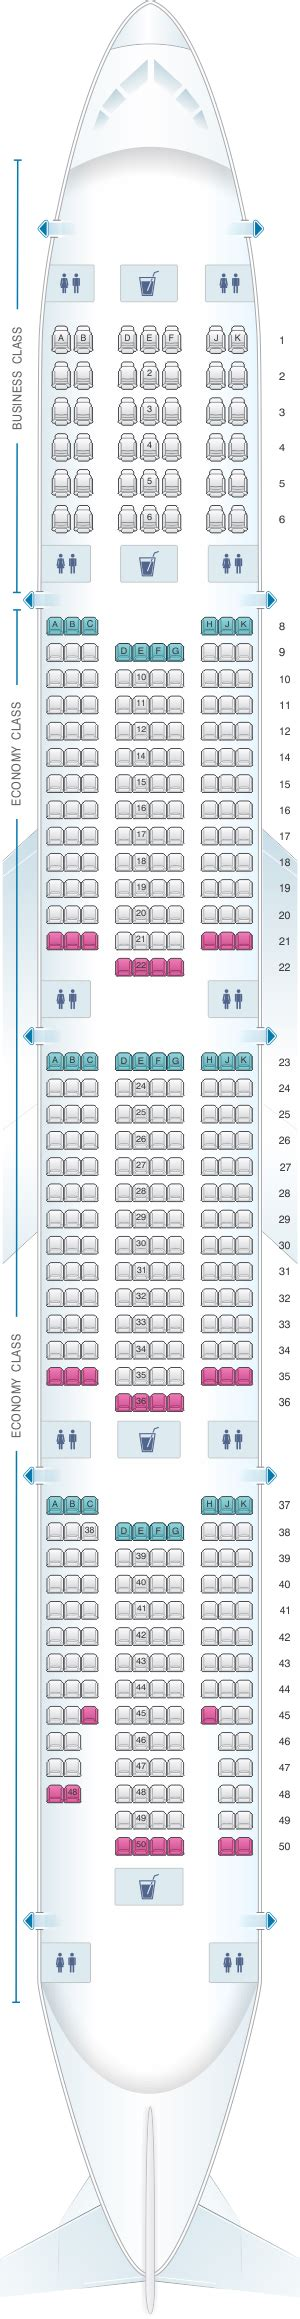 emirates seat map plan de cabine emirates boeing b777 300er two class